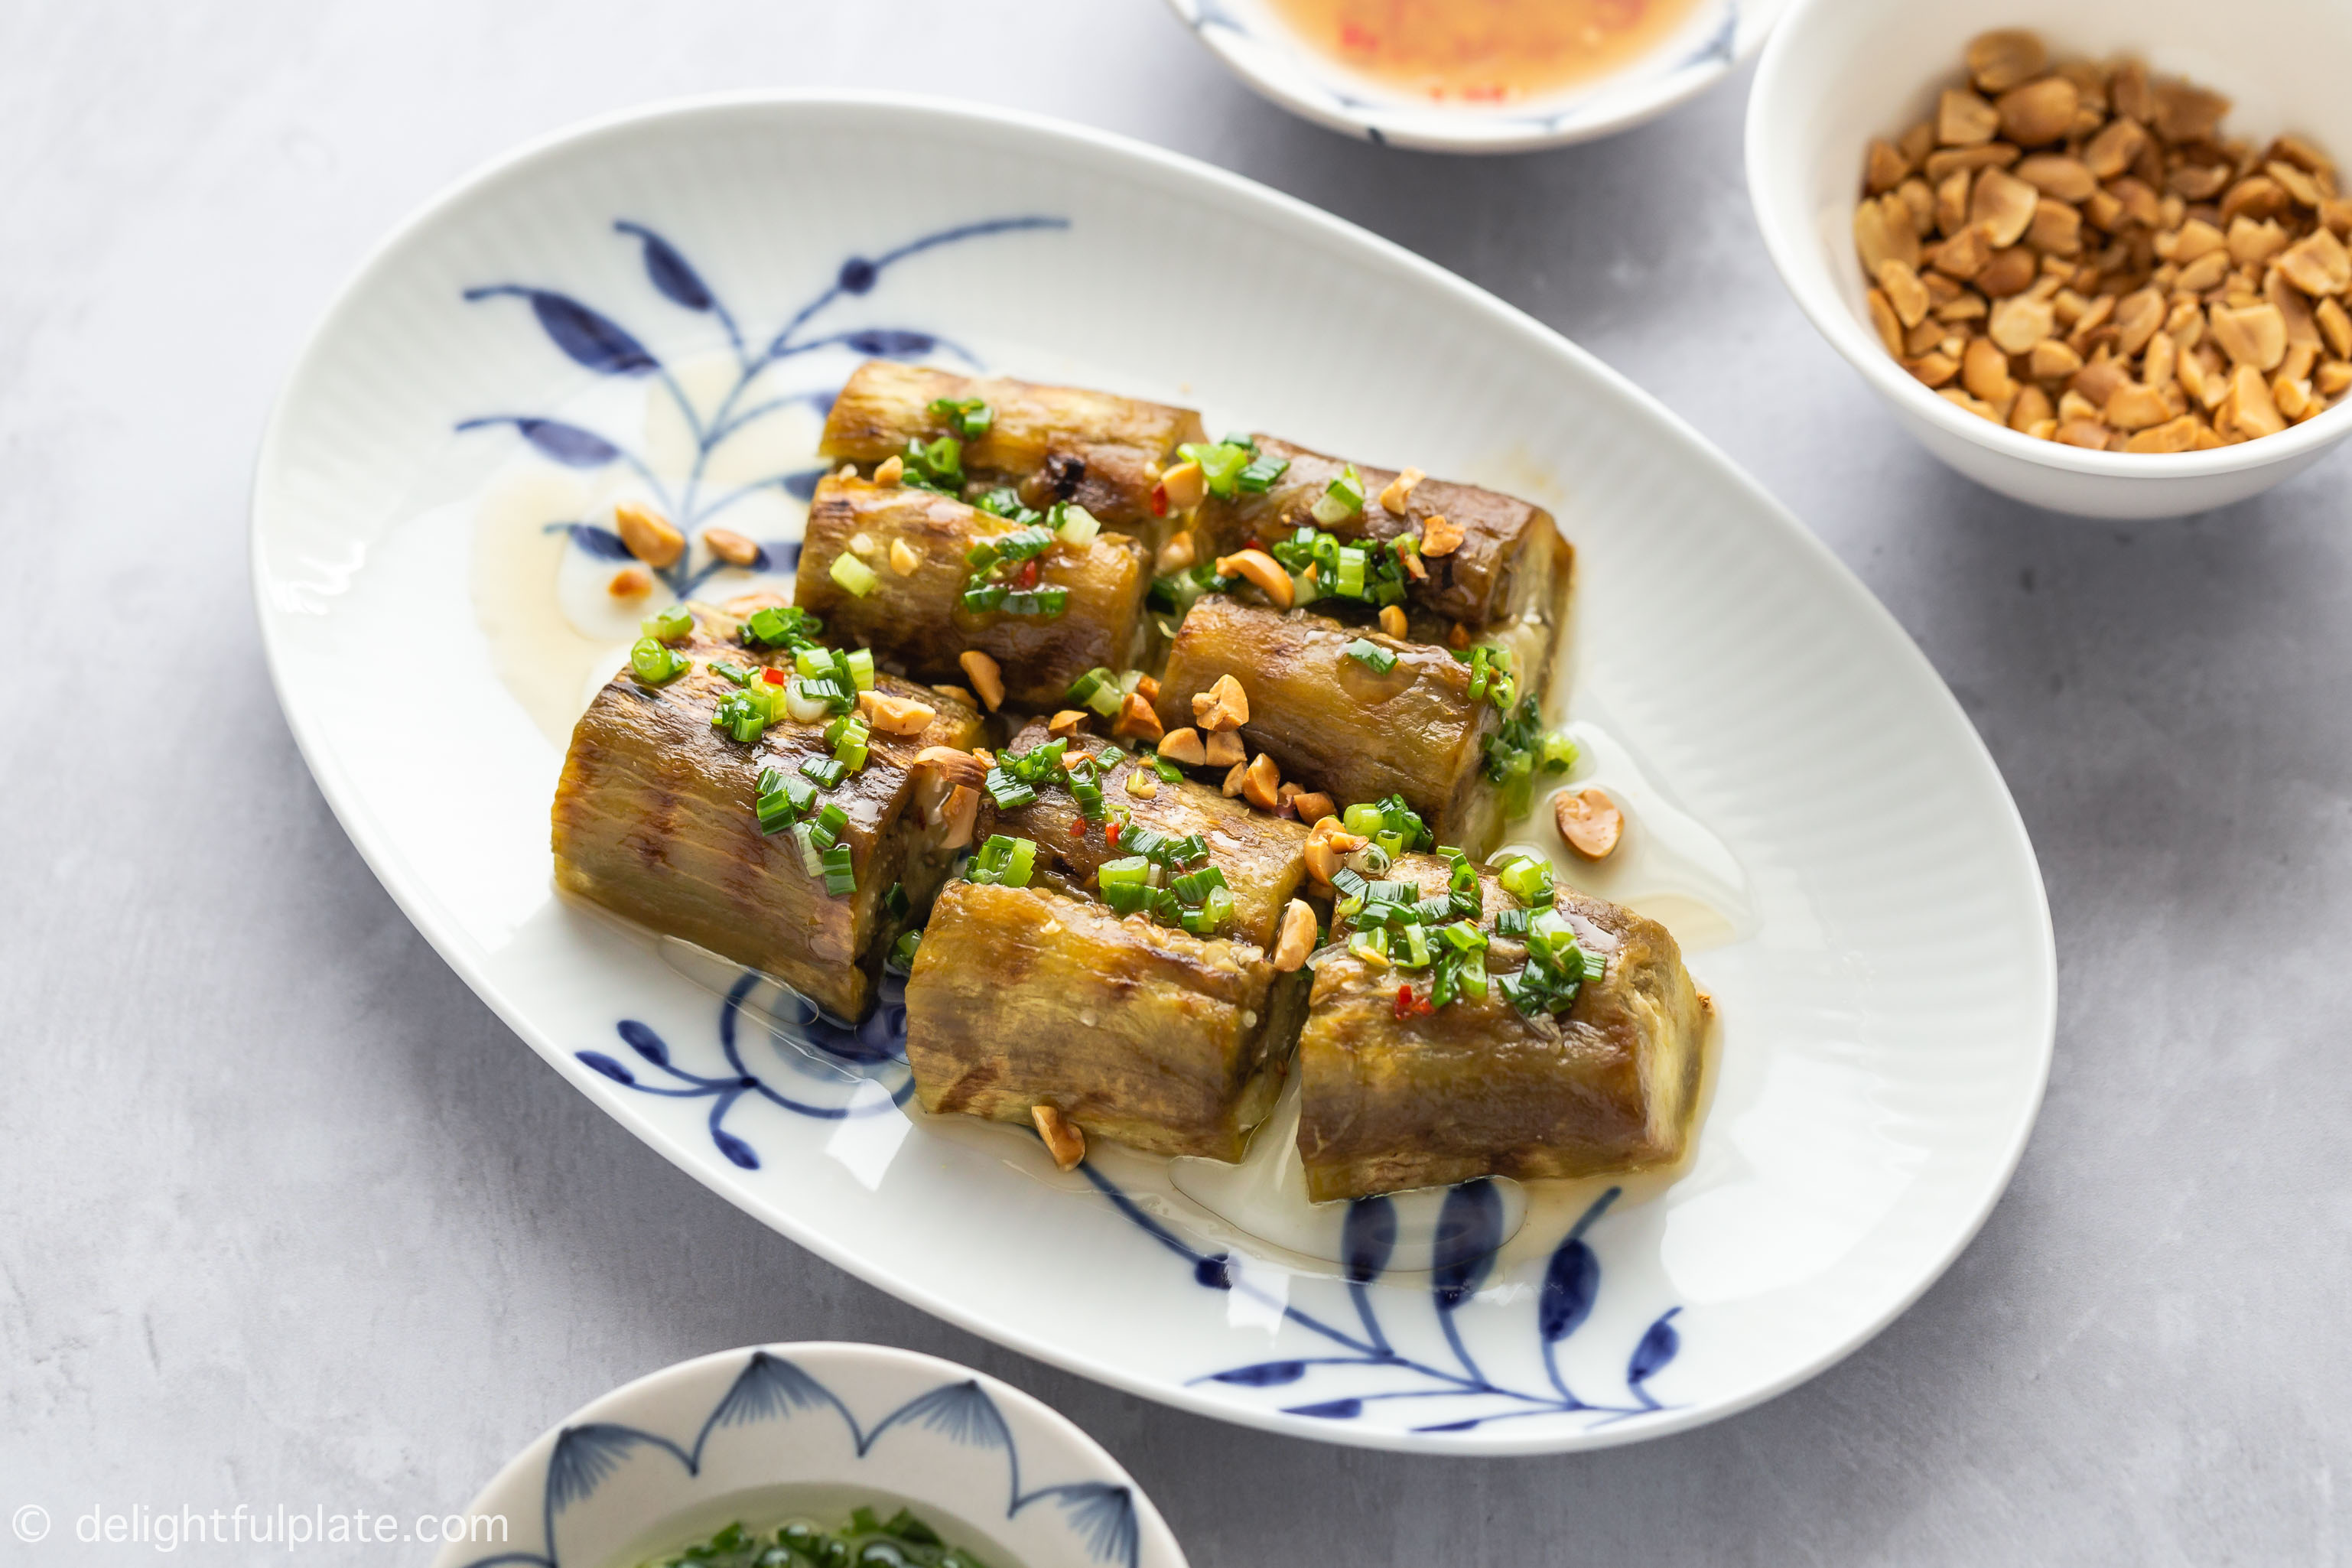 Vietnamese Whole Grilled Eggplant are topped with scallion oil, roasted peanuts and fish sauce dressing.